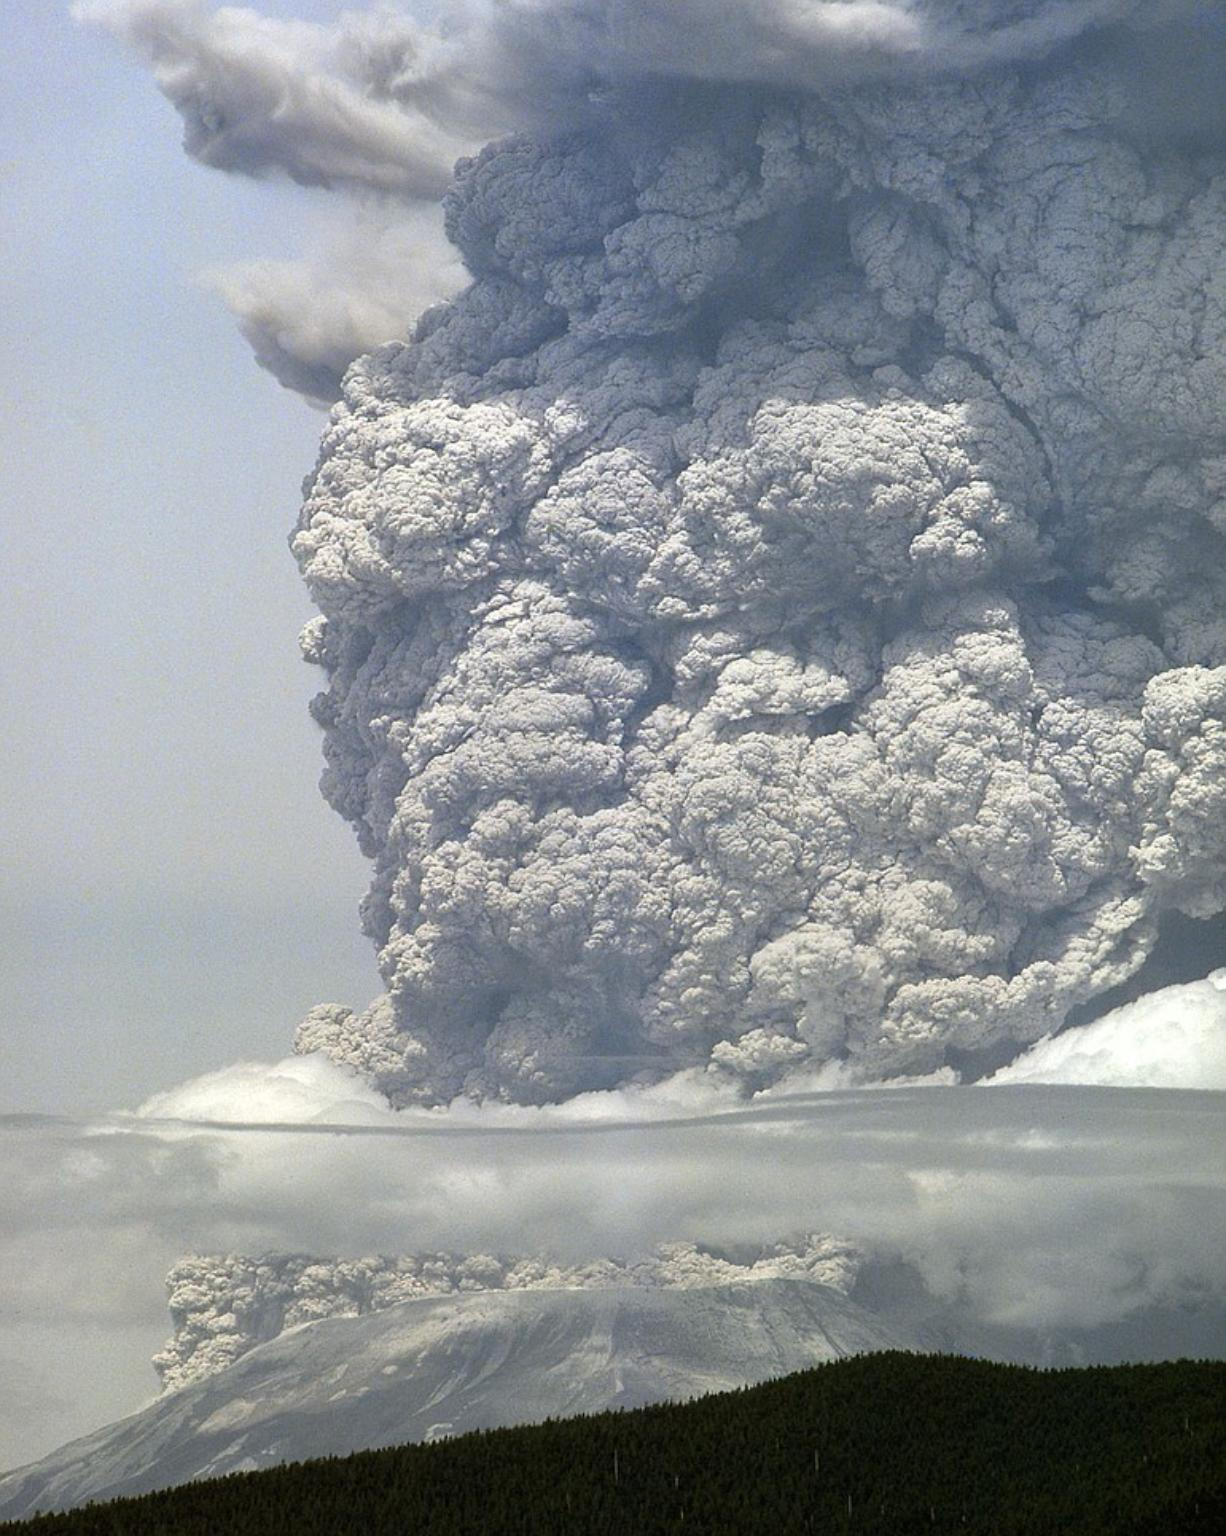 The eruption of Mount St.